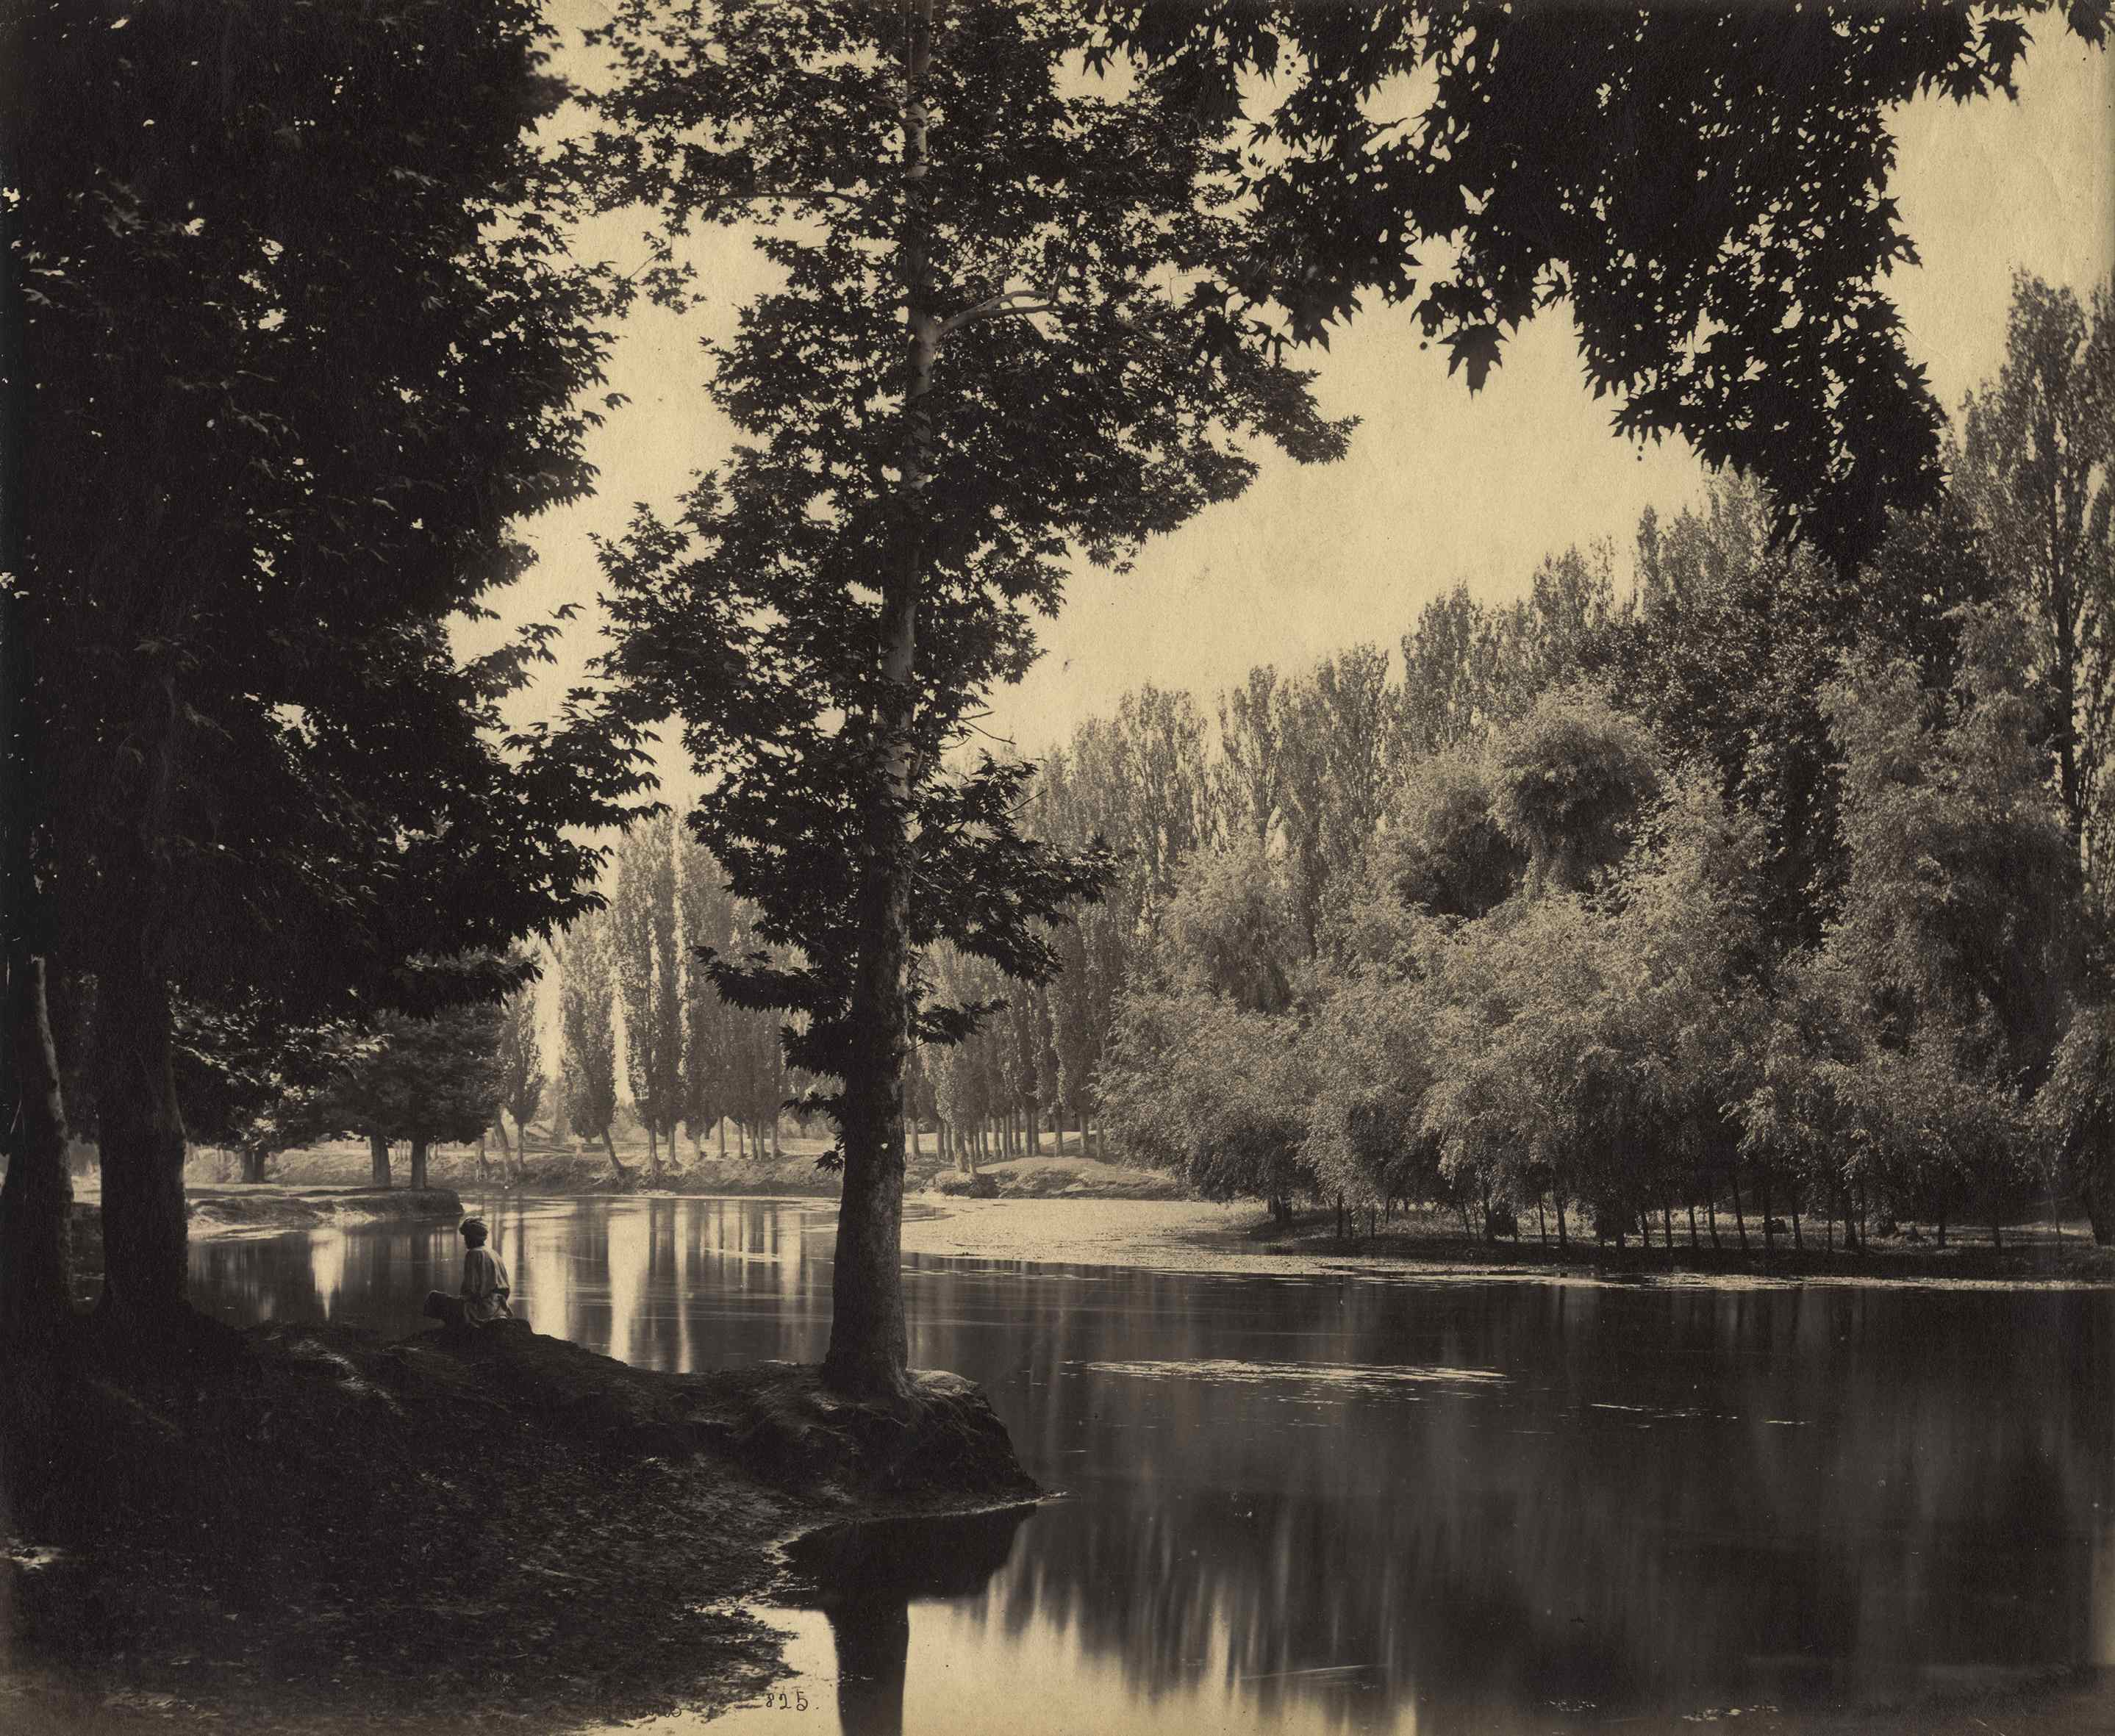 Samuel Bourne - 'View on the Dal Canal, Srinigar, Kashmir', India, c. 1865, Albumen print